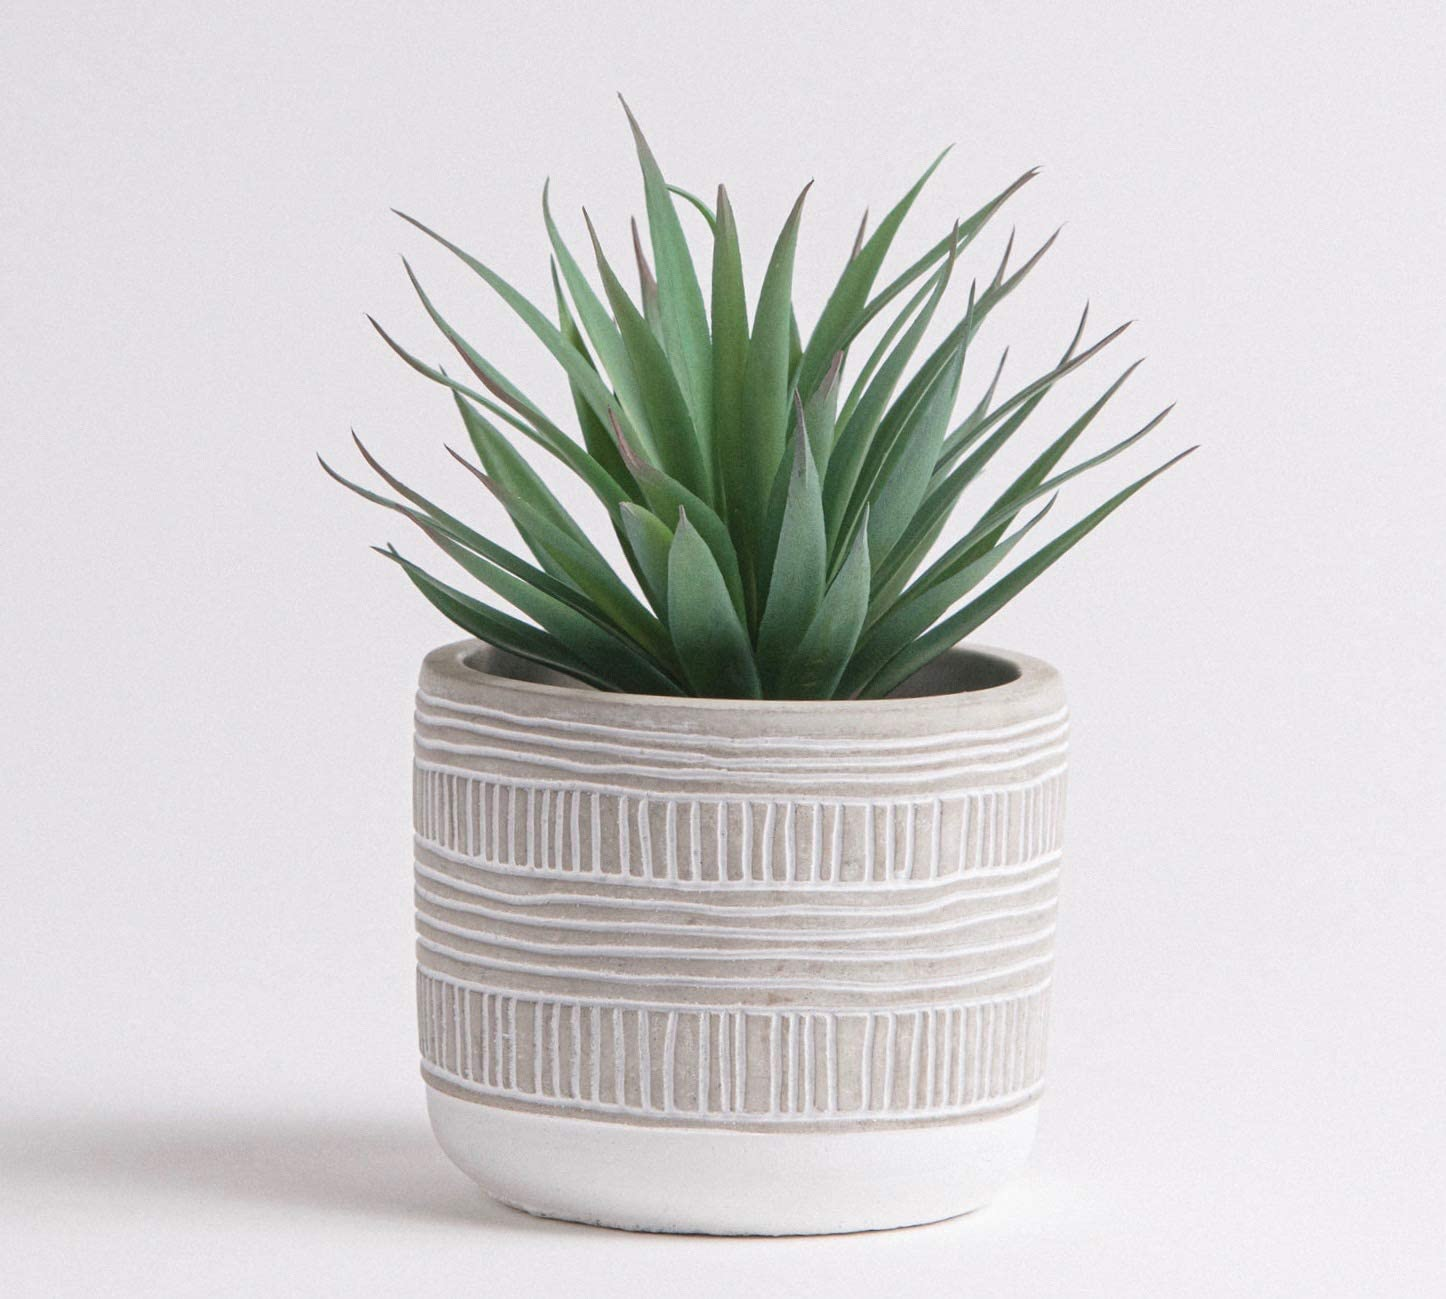 "Kurrajong Farmhouse 8"" x 5"" Artificial Plant in Concrete Cement Pot, Beautiful Faux Plant for Home Decor, Artificial Plants, Fake Plant Decor"